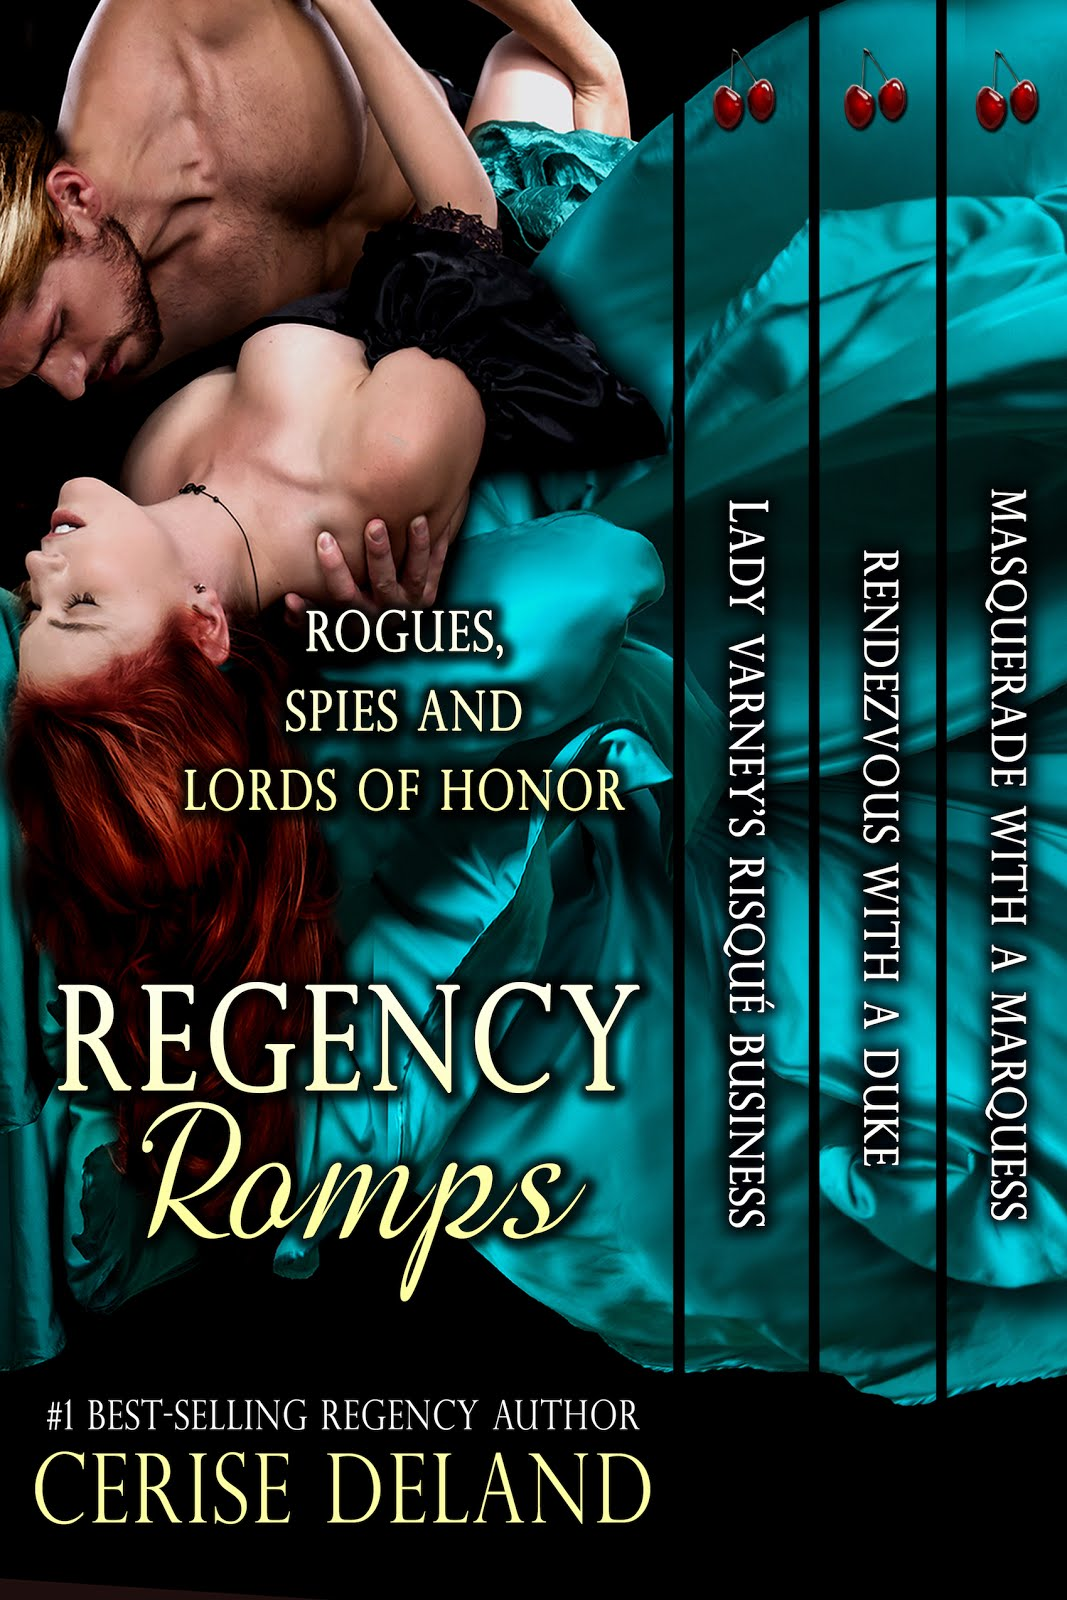 REGENCY ROMPS Box Set!